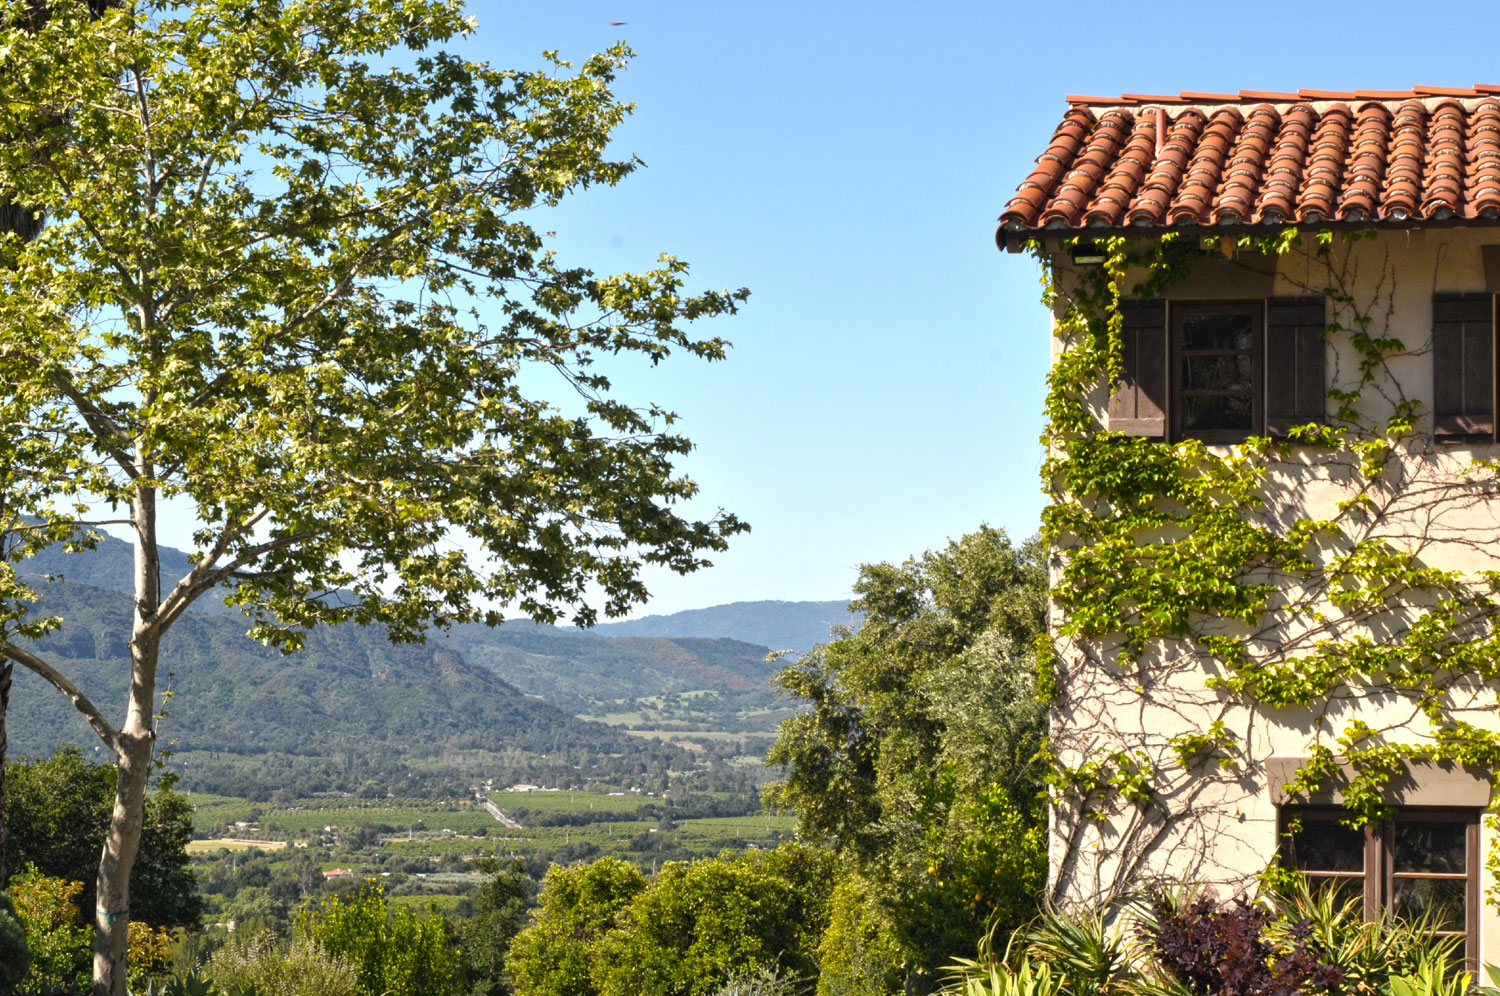 The estate enjoys commanding views of the Ojai Valley.